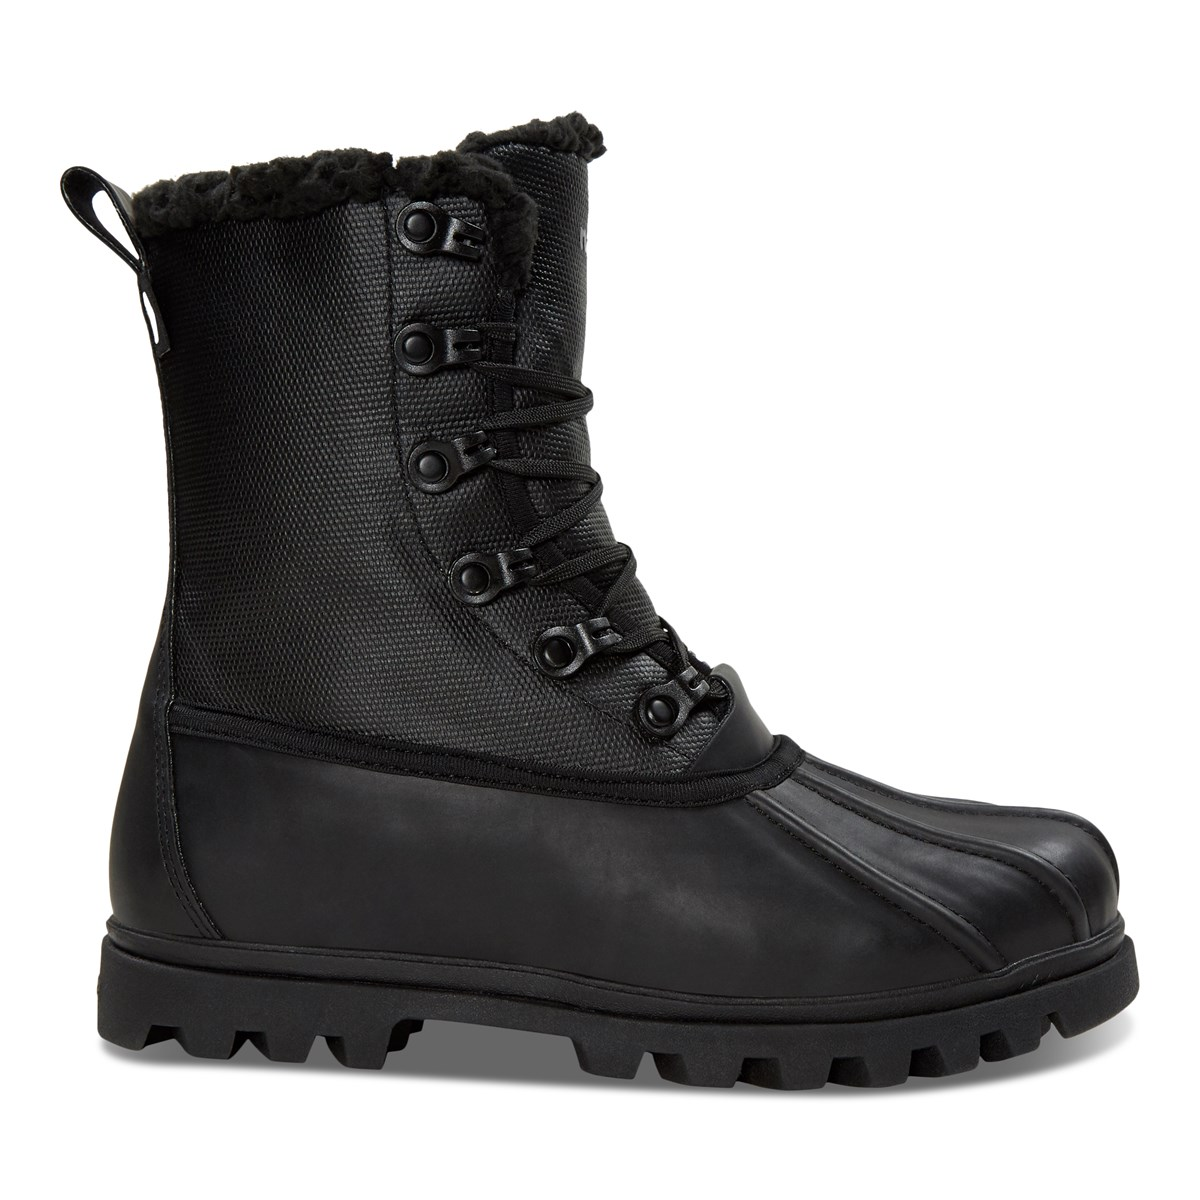 Women's Jimmy 3.0 Boots in Black